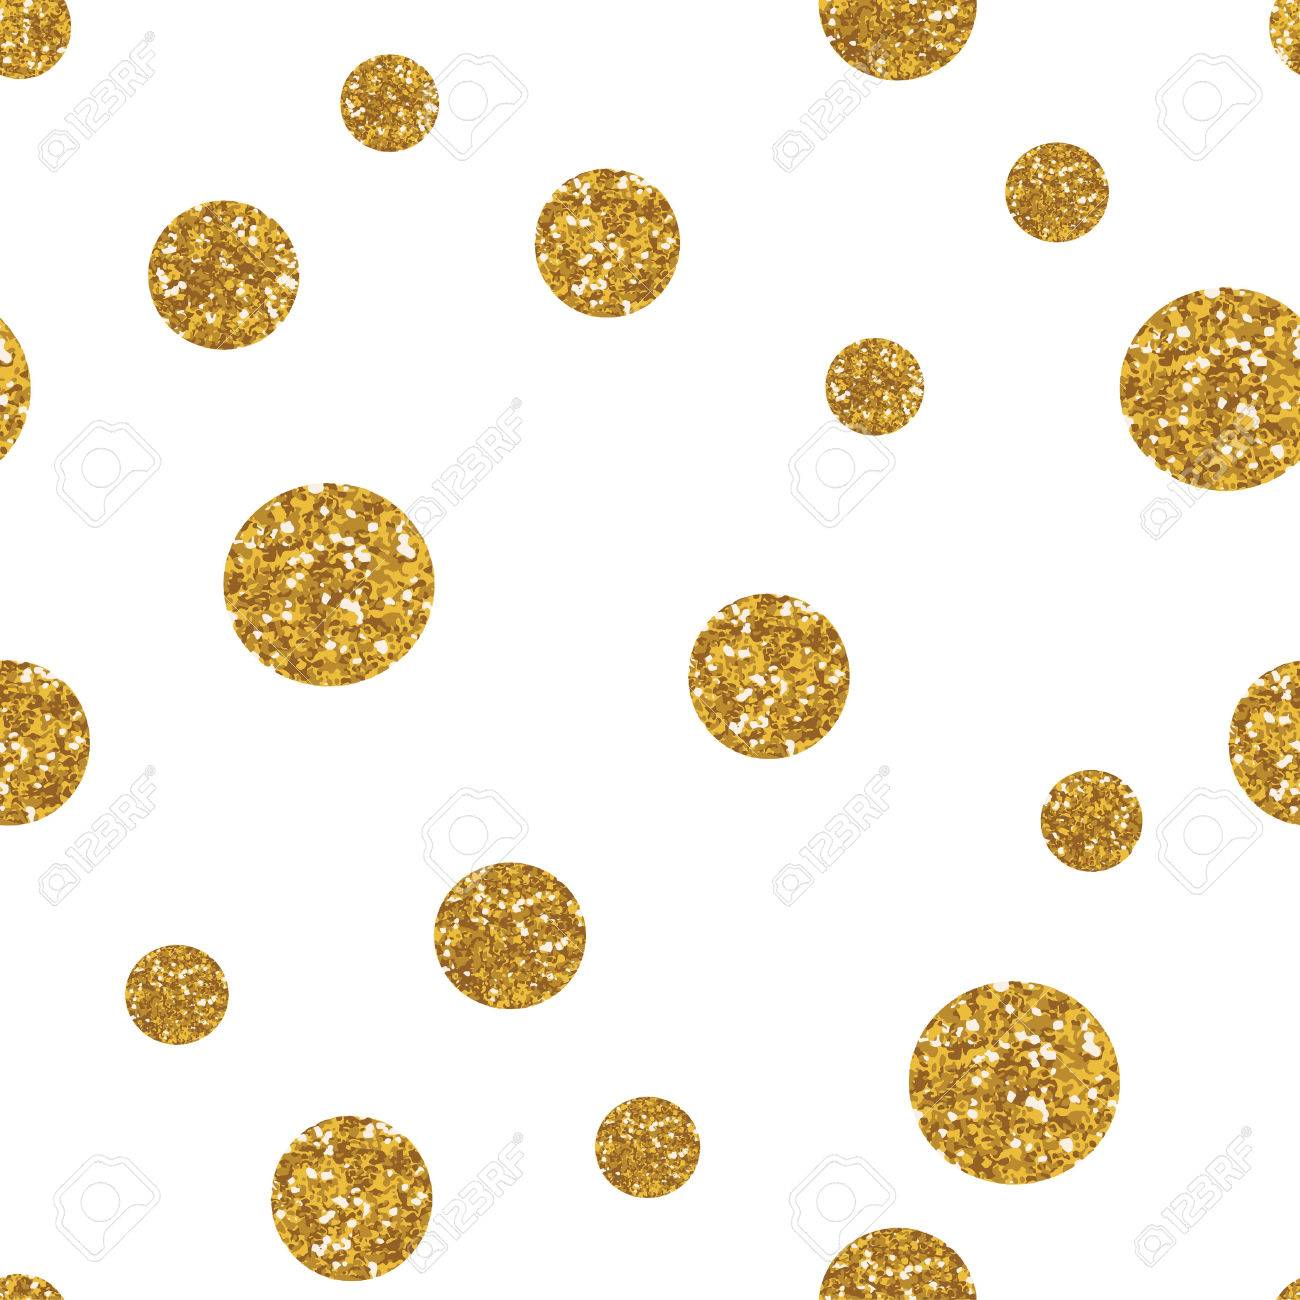 Endless stylish glamour background for wrapping paper, backdrop, fabric and other prints. - 48049223